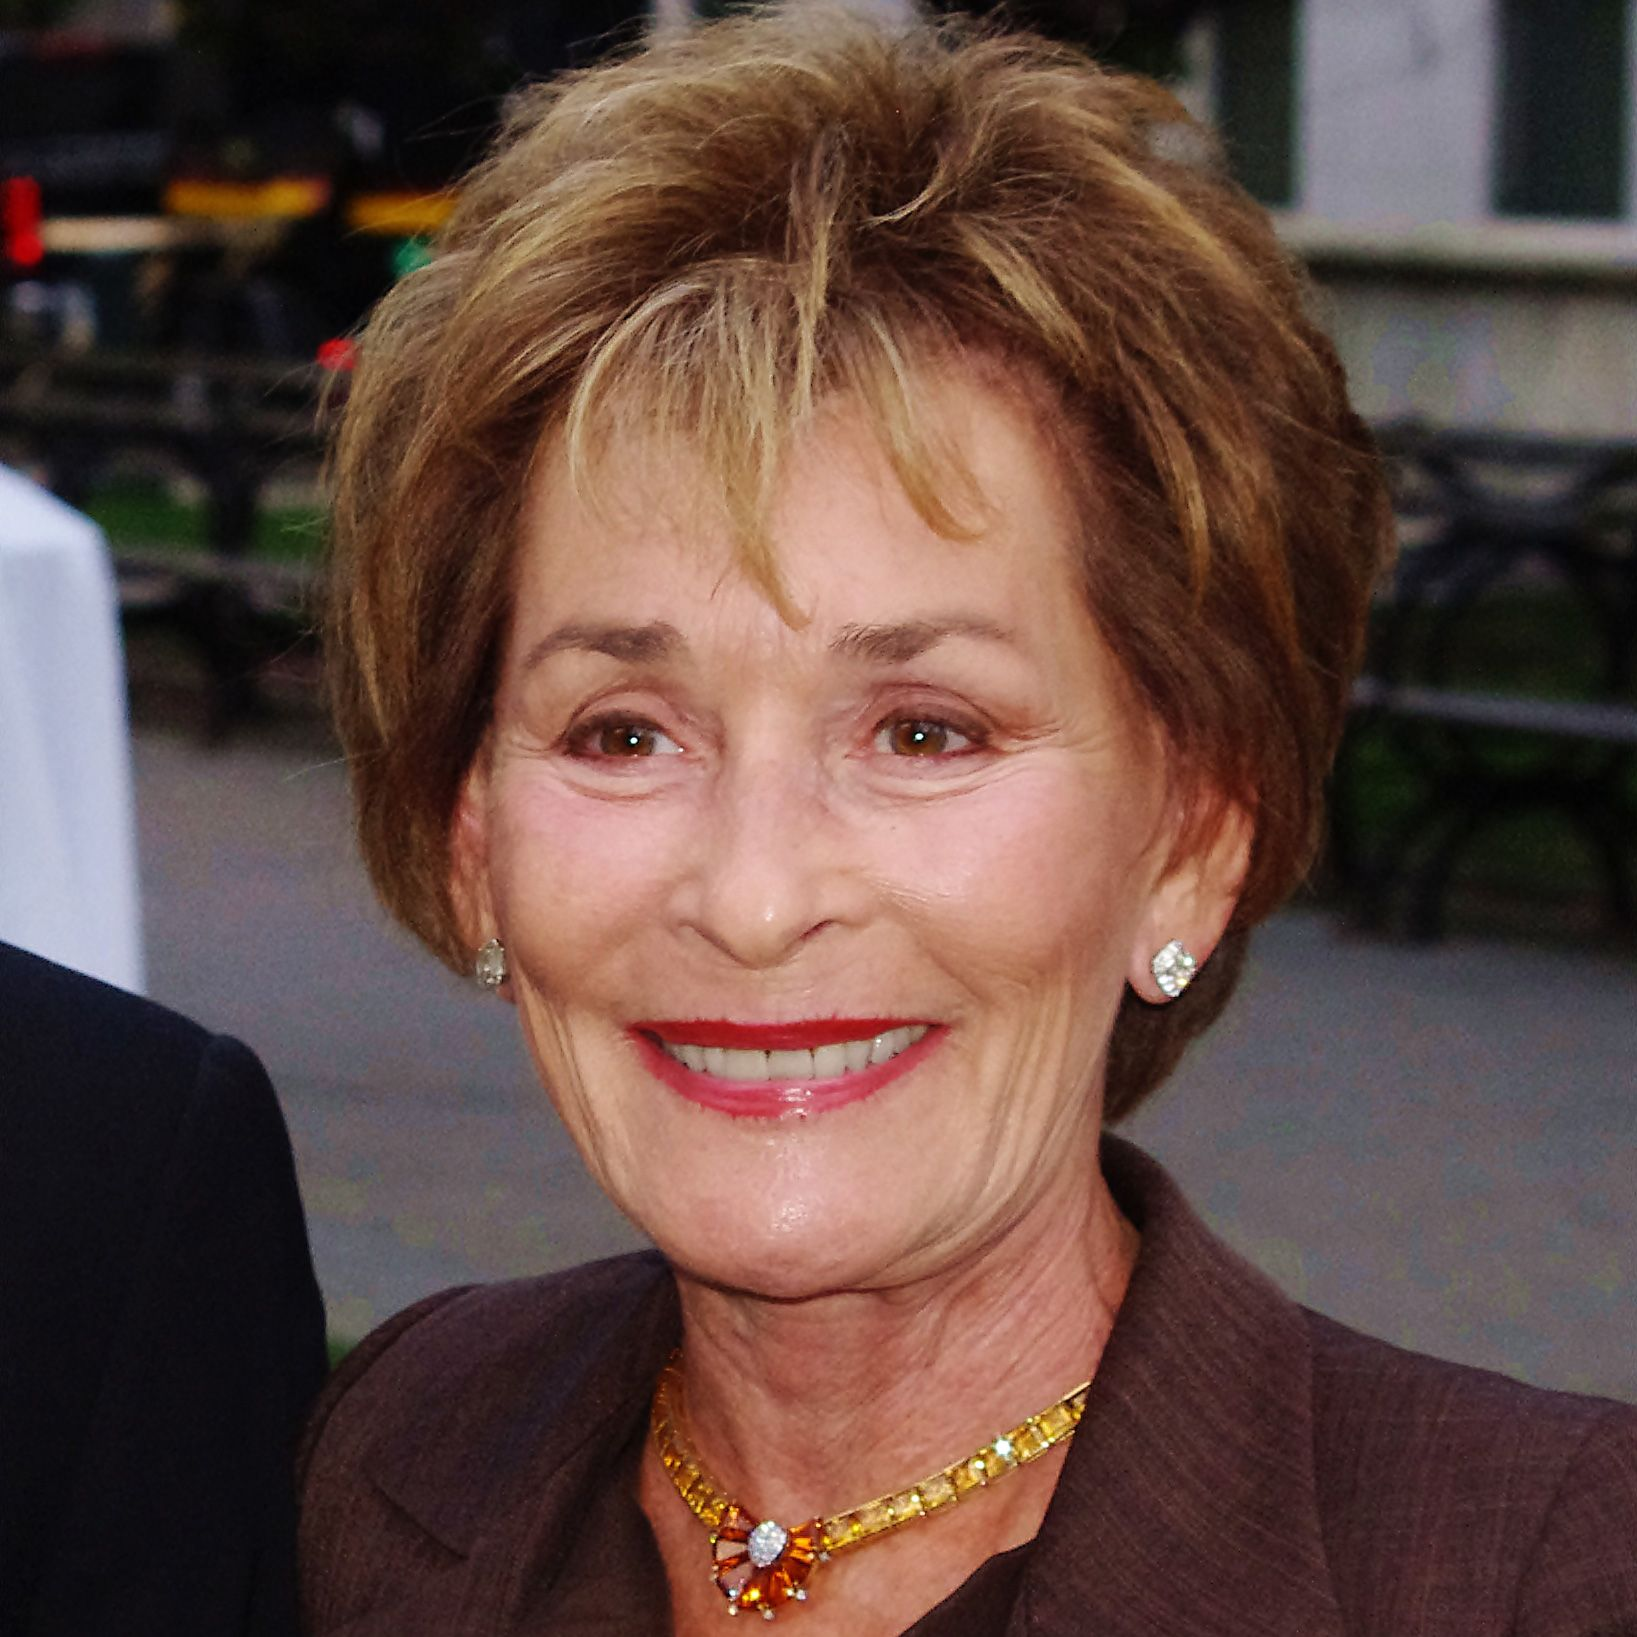 Judy Sheindlin Net Worth